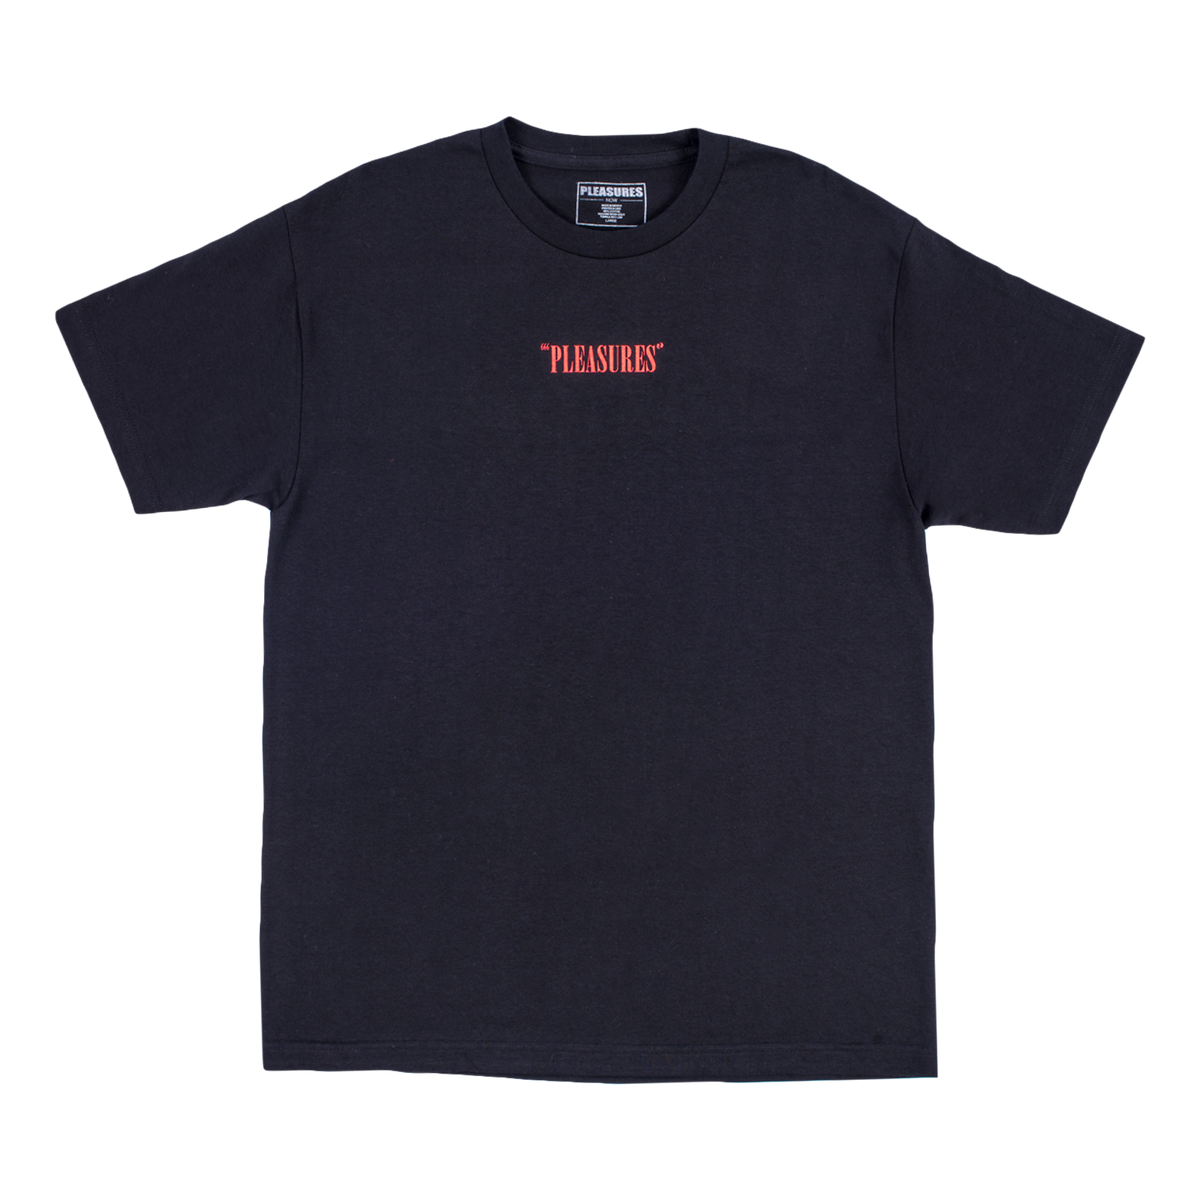 Freaks T-Shirt - Black